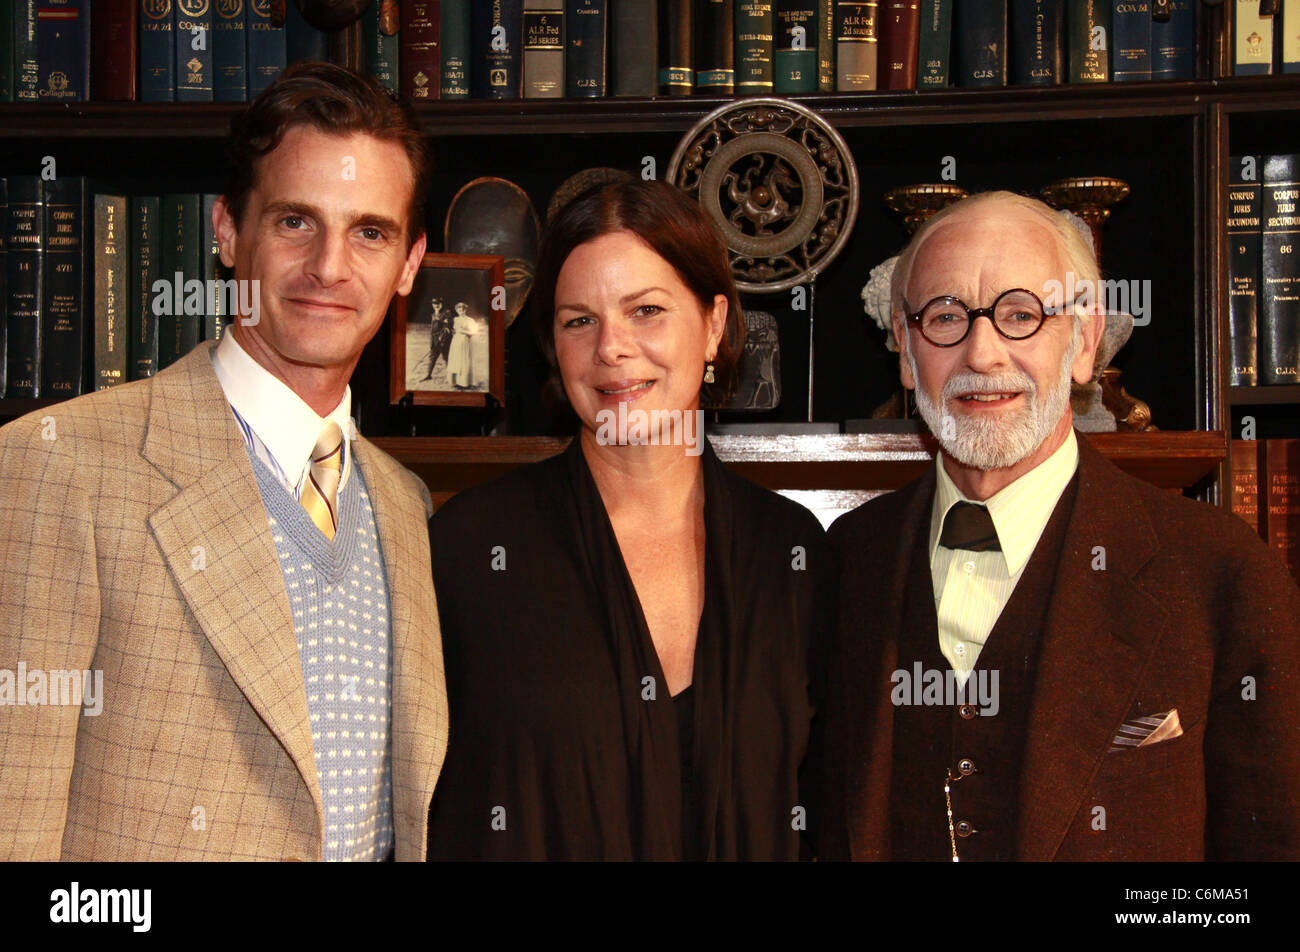 Mark H. Dold (in costume as C.S. Lewis), Marcia Gay Harden and Martin Rayner (as Sigmund Freud) Marcia Gay Harden - Stock Image